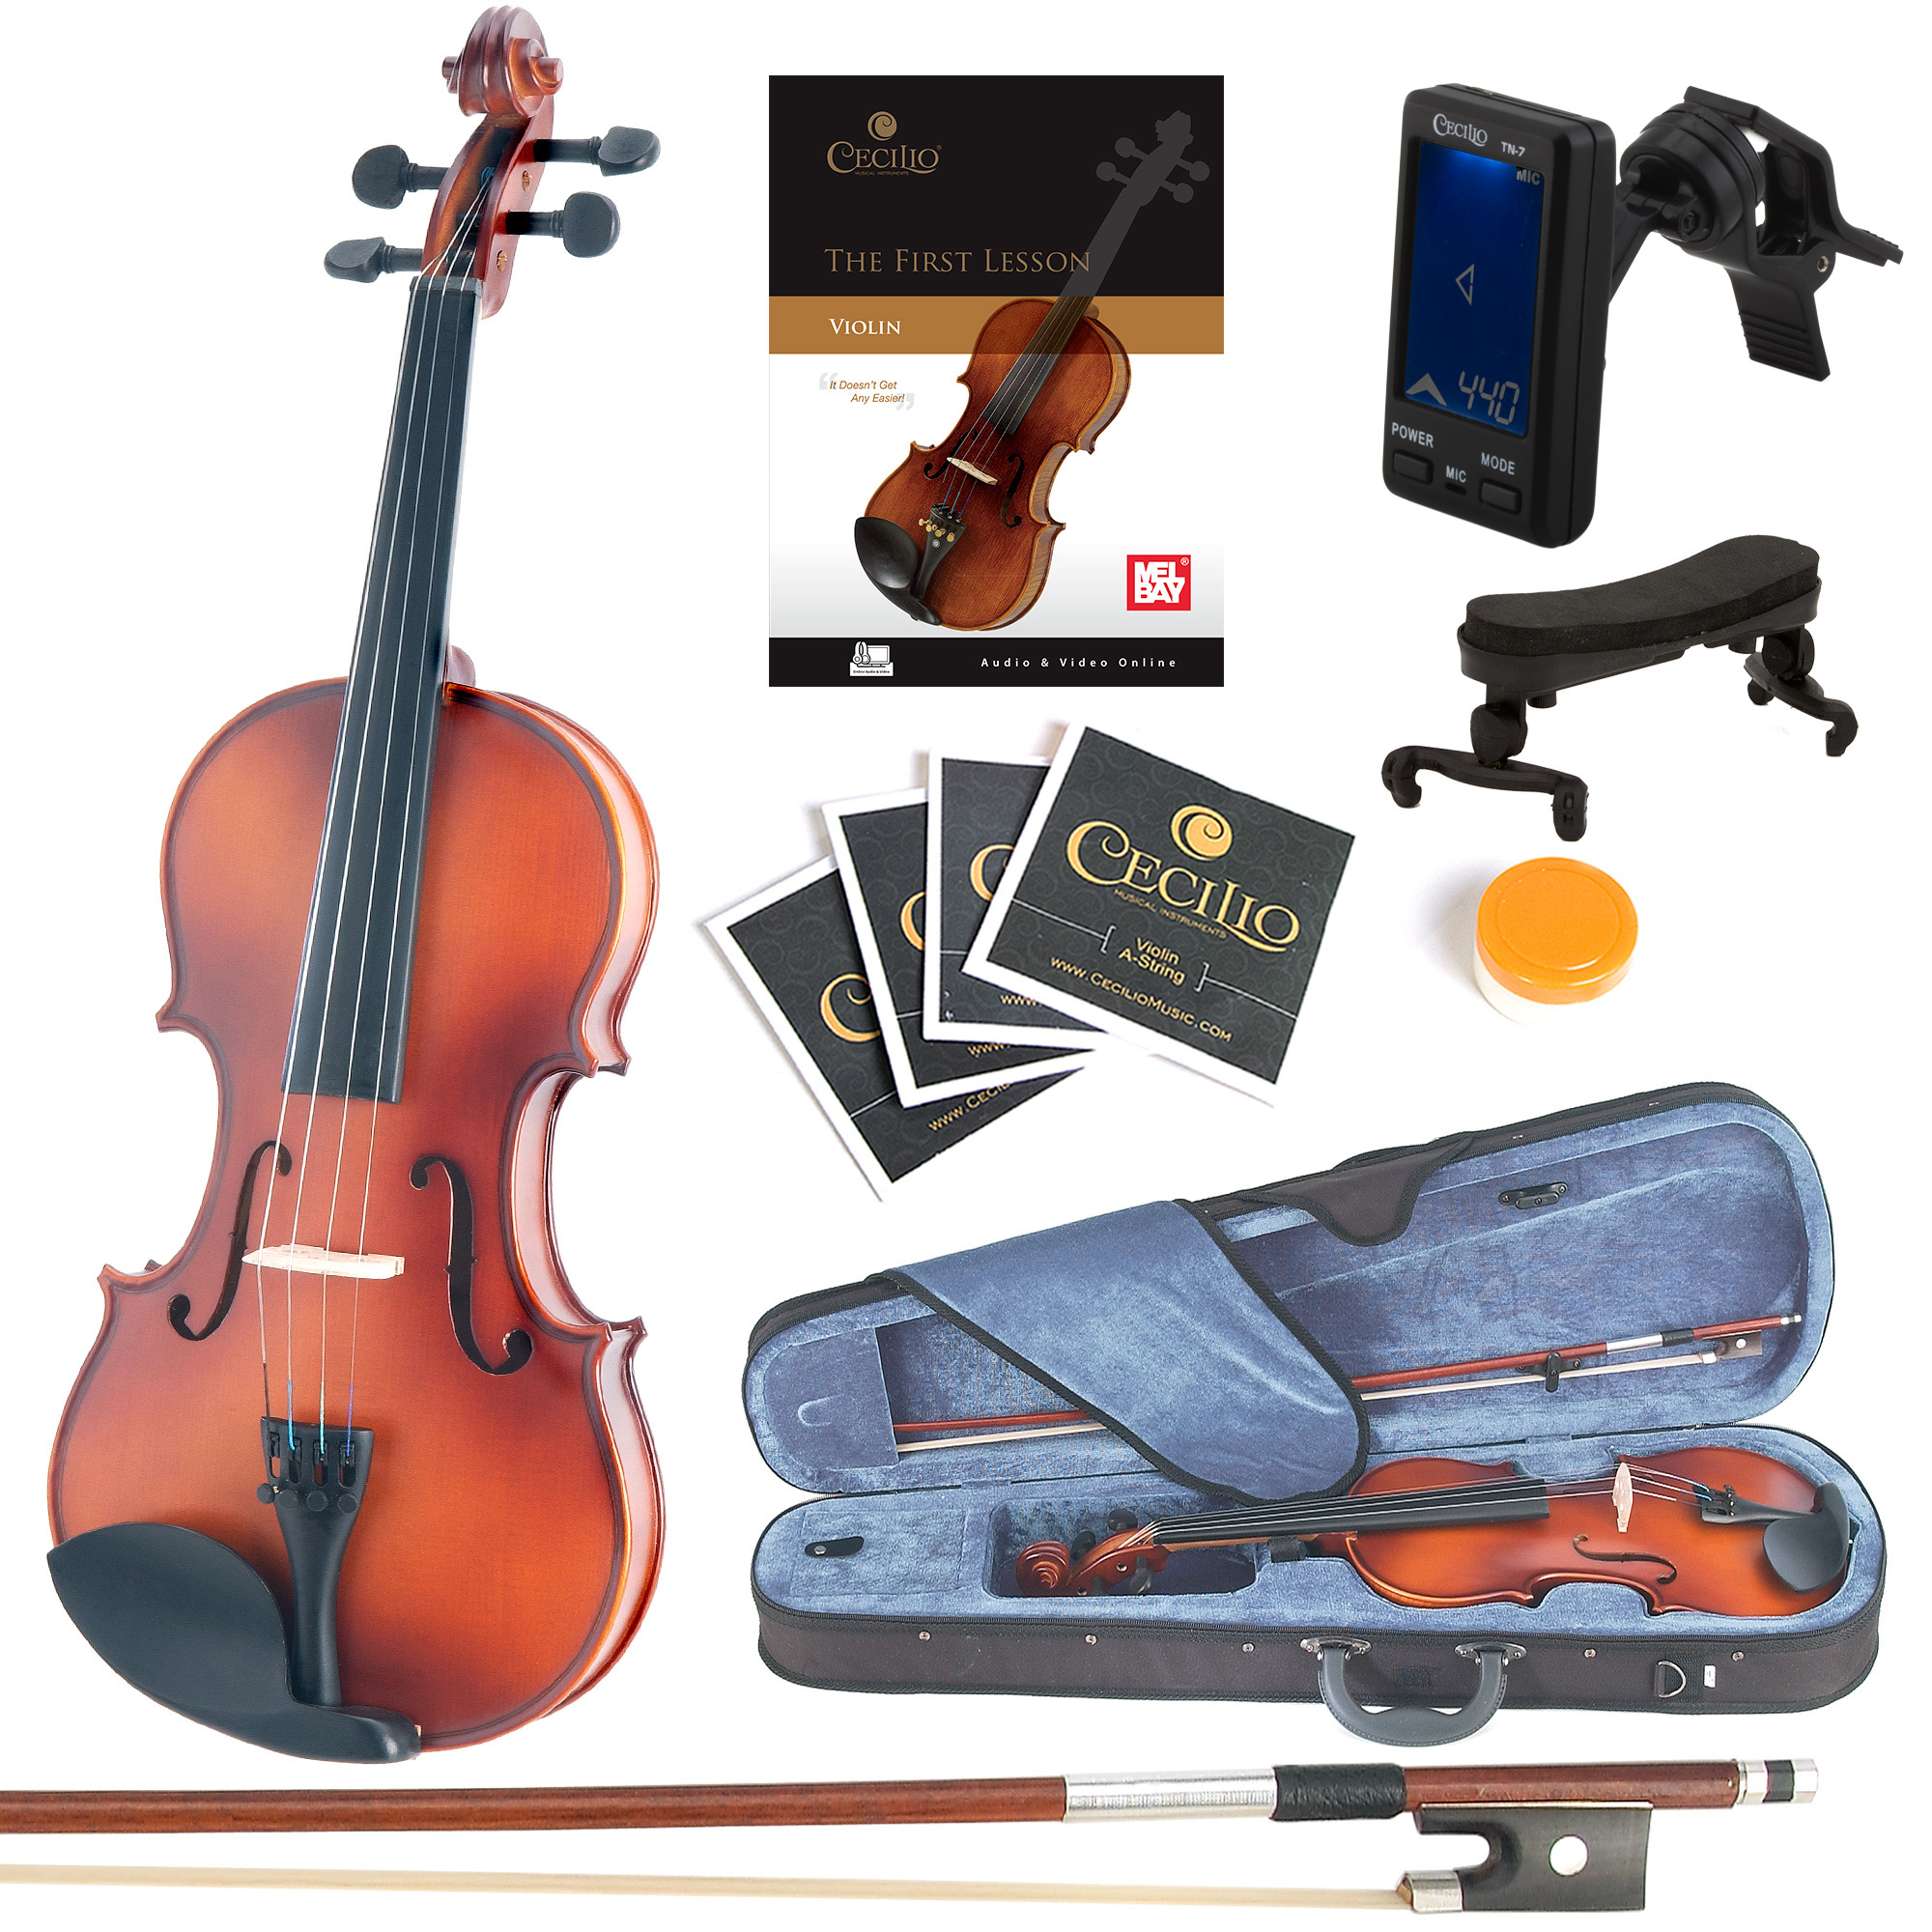 Mendini Full Size 4/4 MV300 Solid Wood Violin w/Tuner, Lesson Book, Shoulder Rest, Extra Strings, Bow, 2 Bridges & Case, Satin Antique Finish